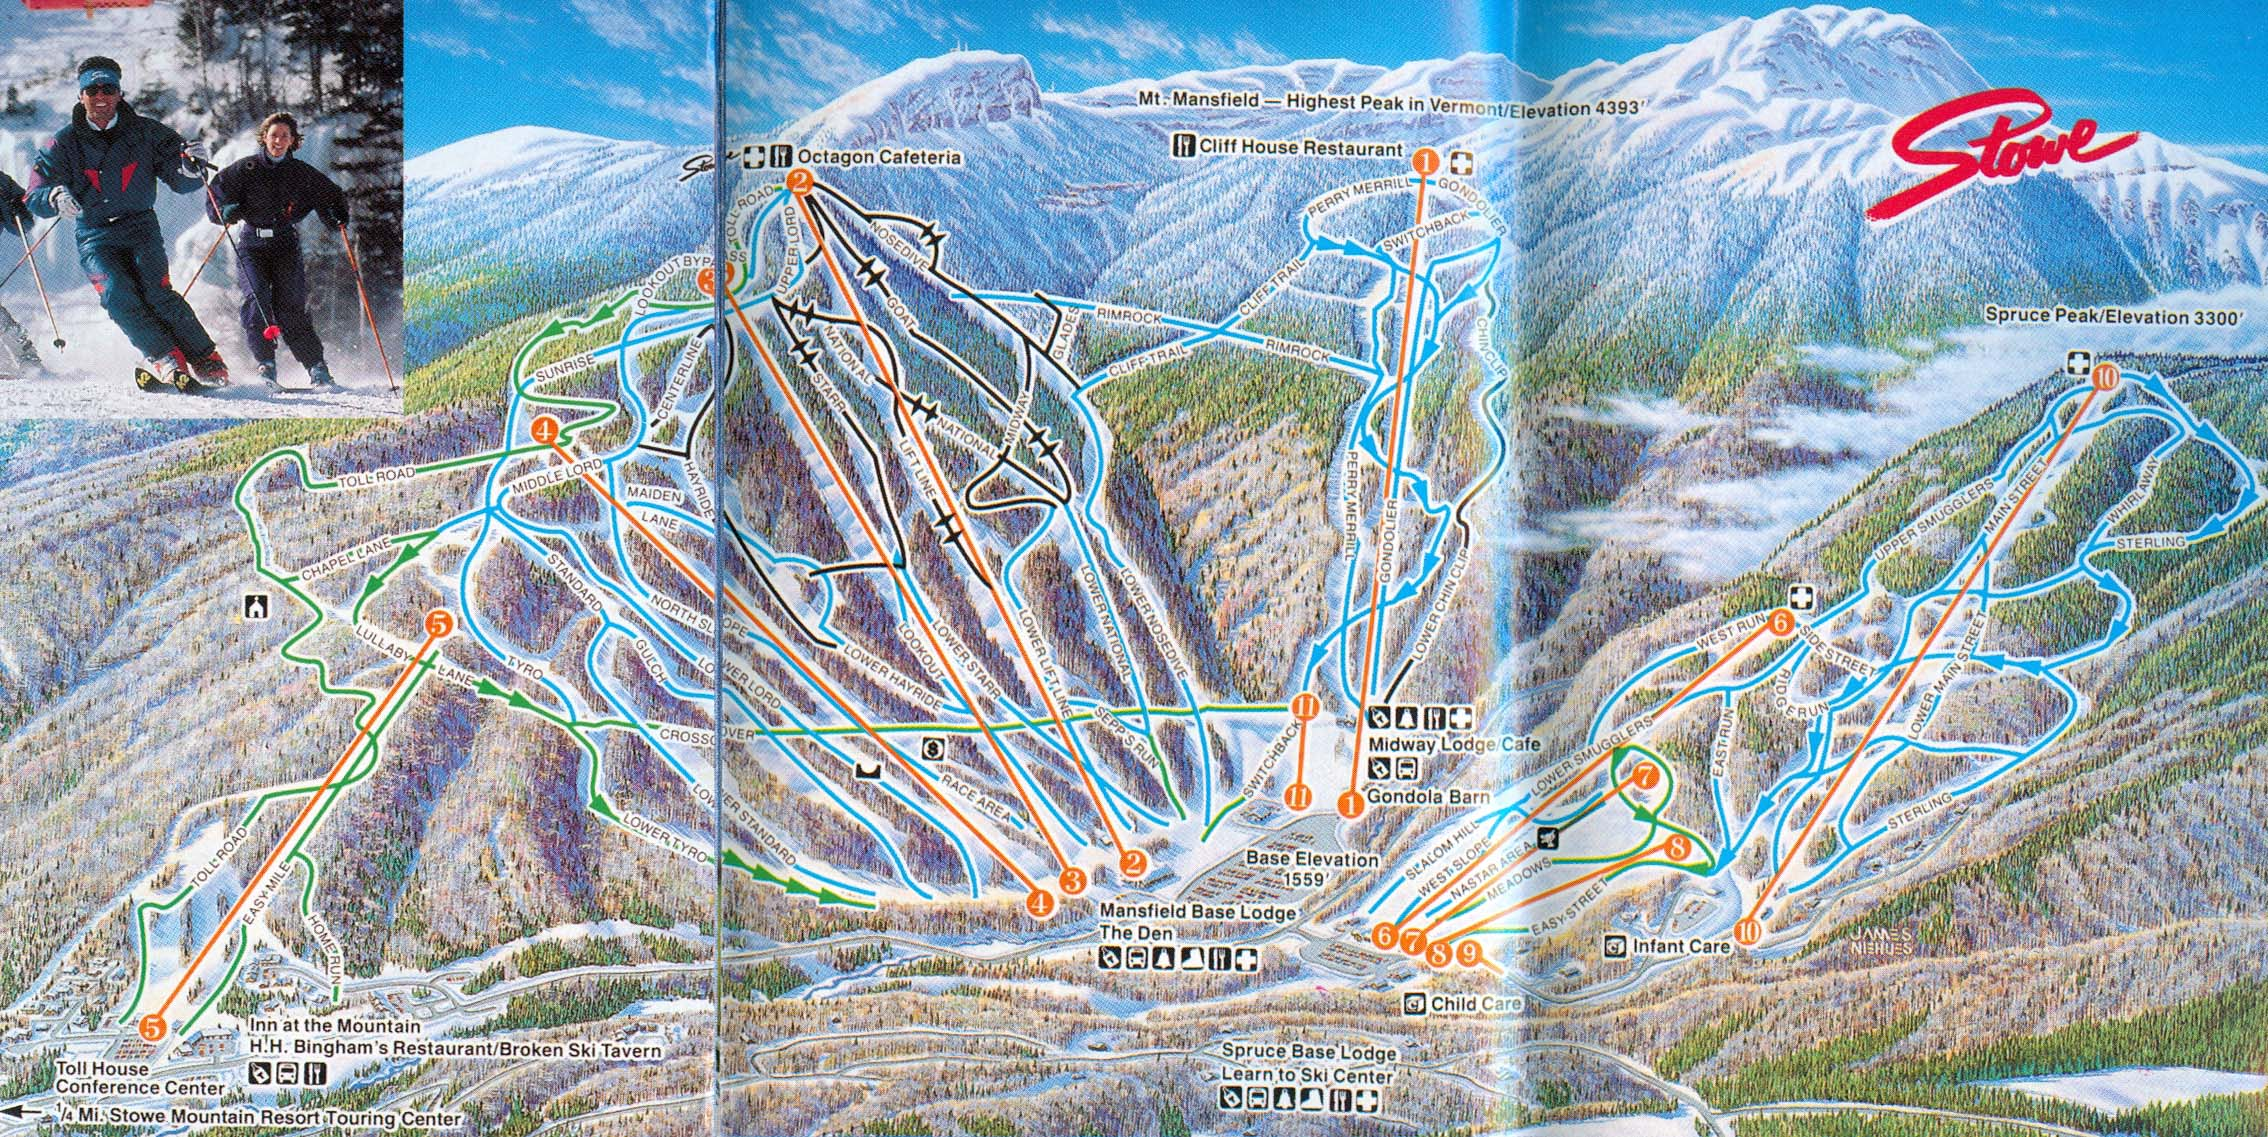 Skiing New England Map.Vermont Ski Mountains Map Bnhspine Com